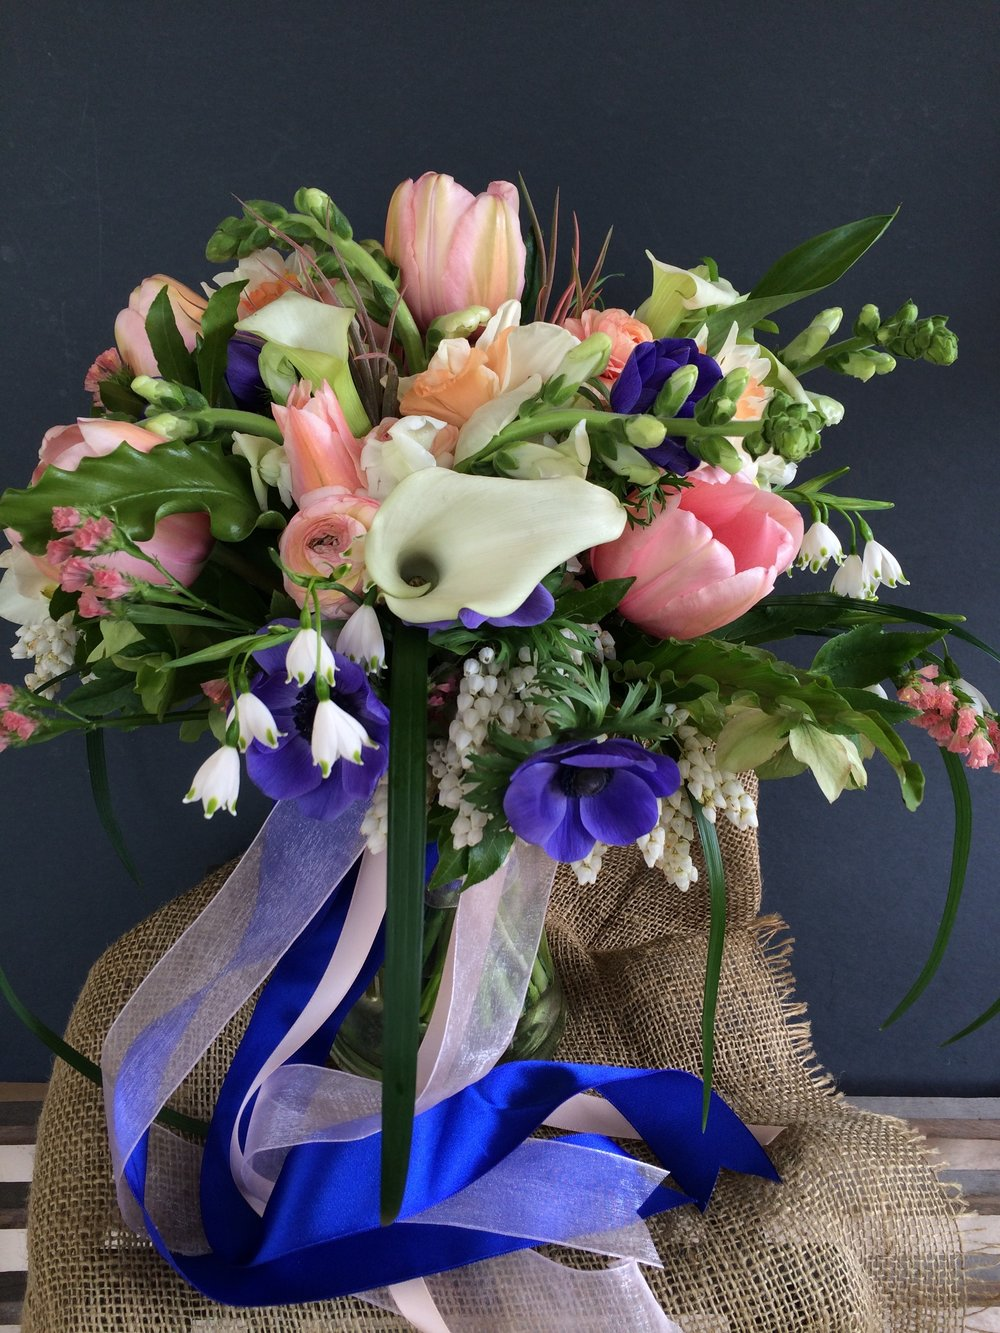 early spring bridal bouquet of french tulips, peony, anemone, calla lilies and snow drops